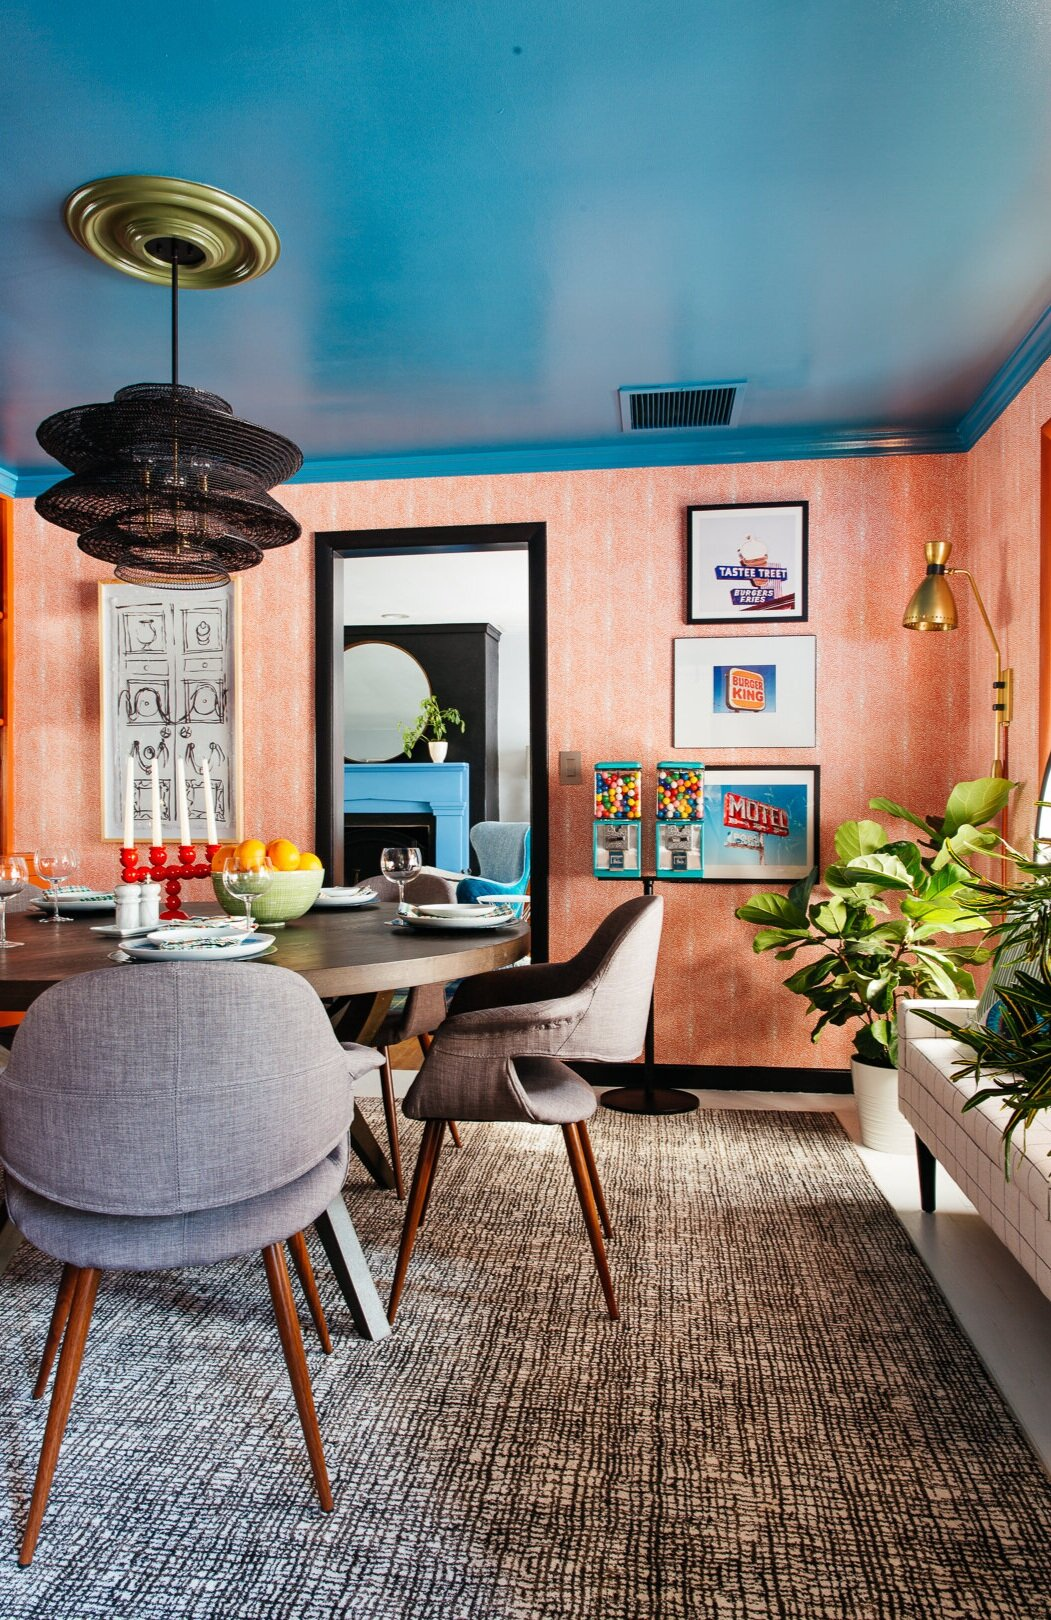 sm+ORC+dining+room+from+kitchen+design+by+therathproject.jpg